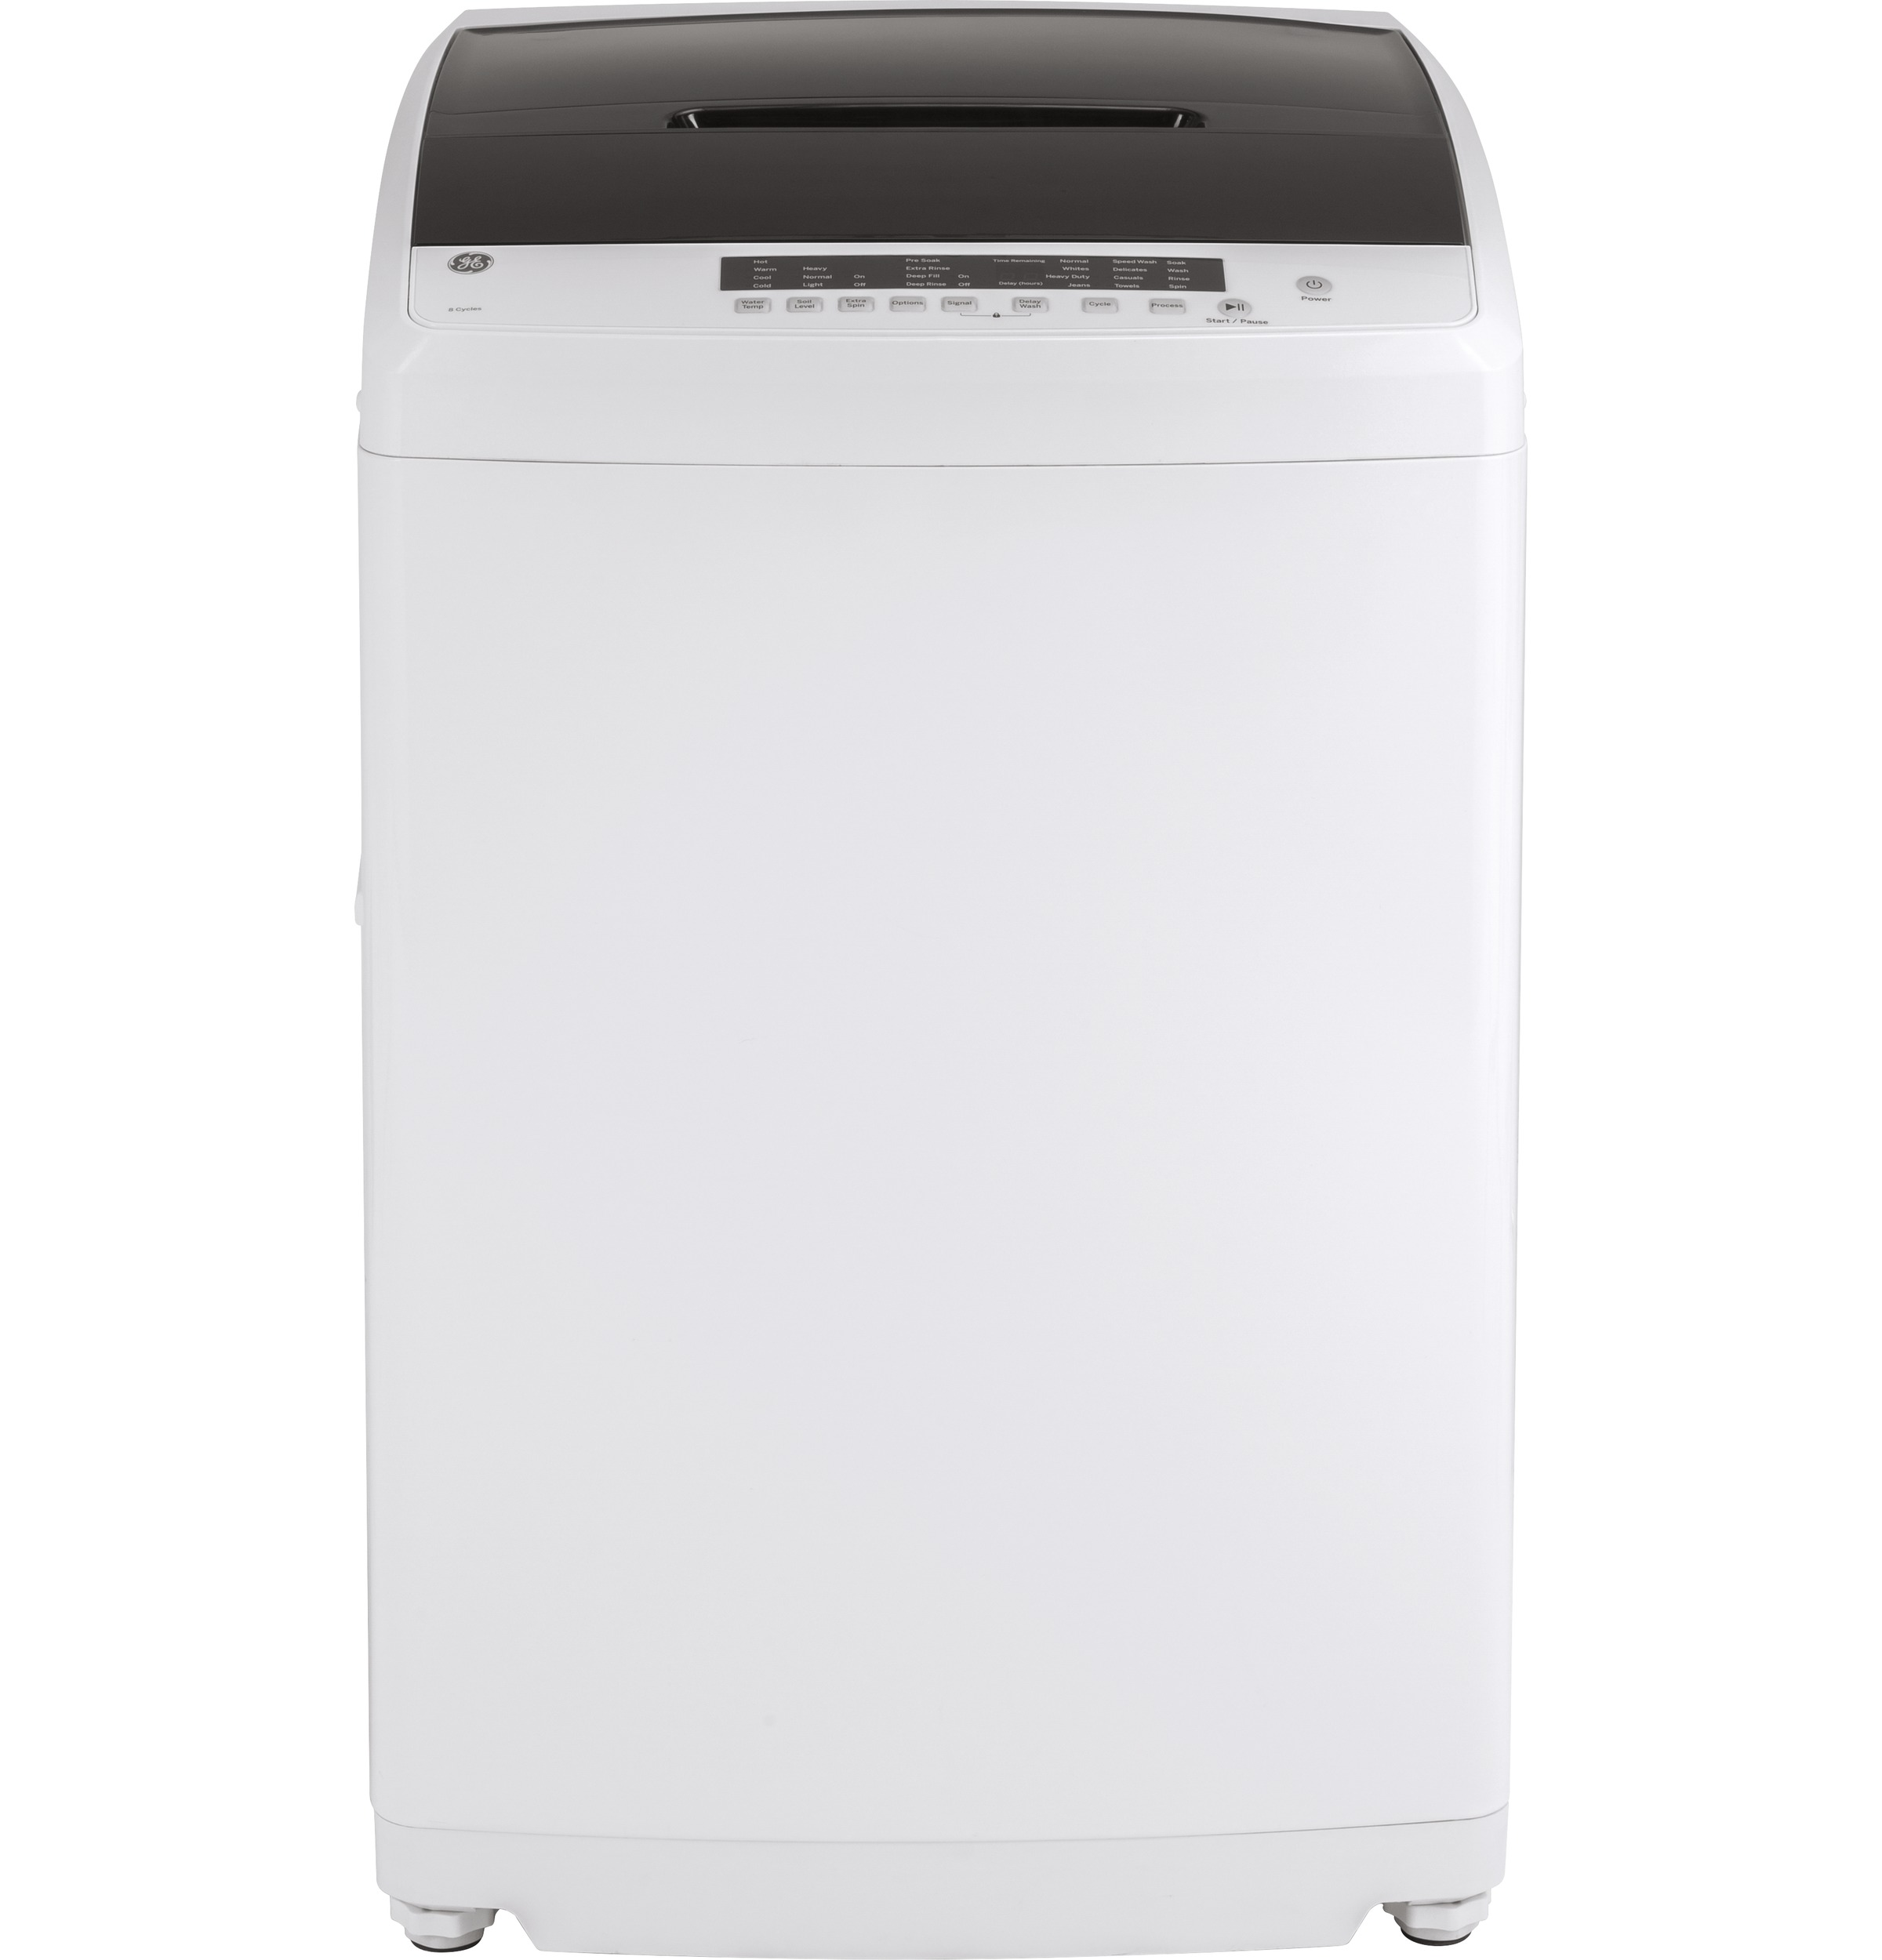 GE GE® Space-Saving 2.8 cu. ft. Capacity Stationary Washer with Stainless Steel Basket